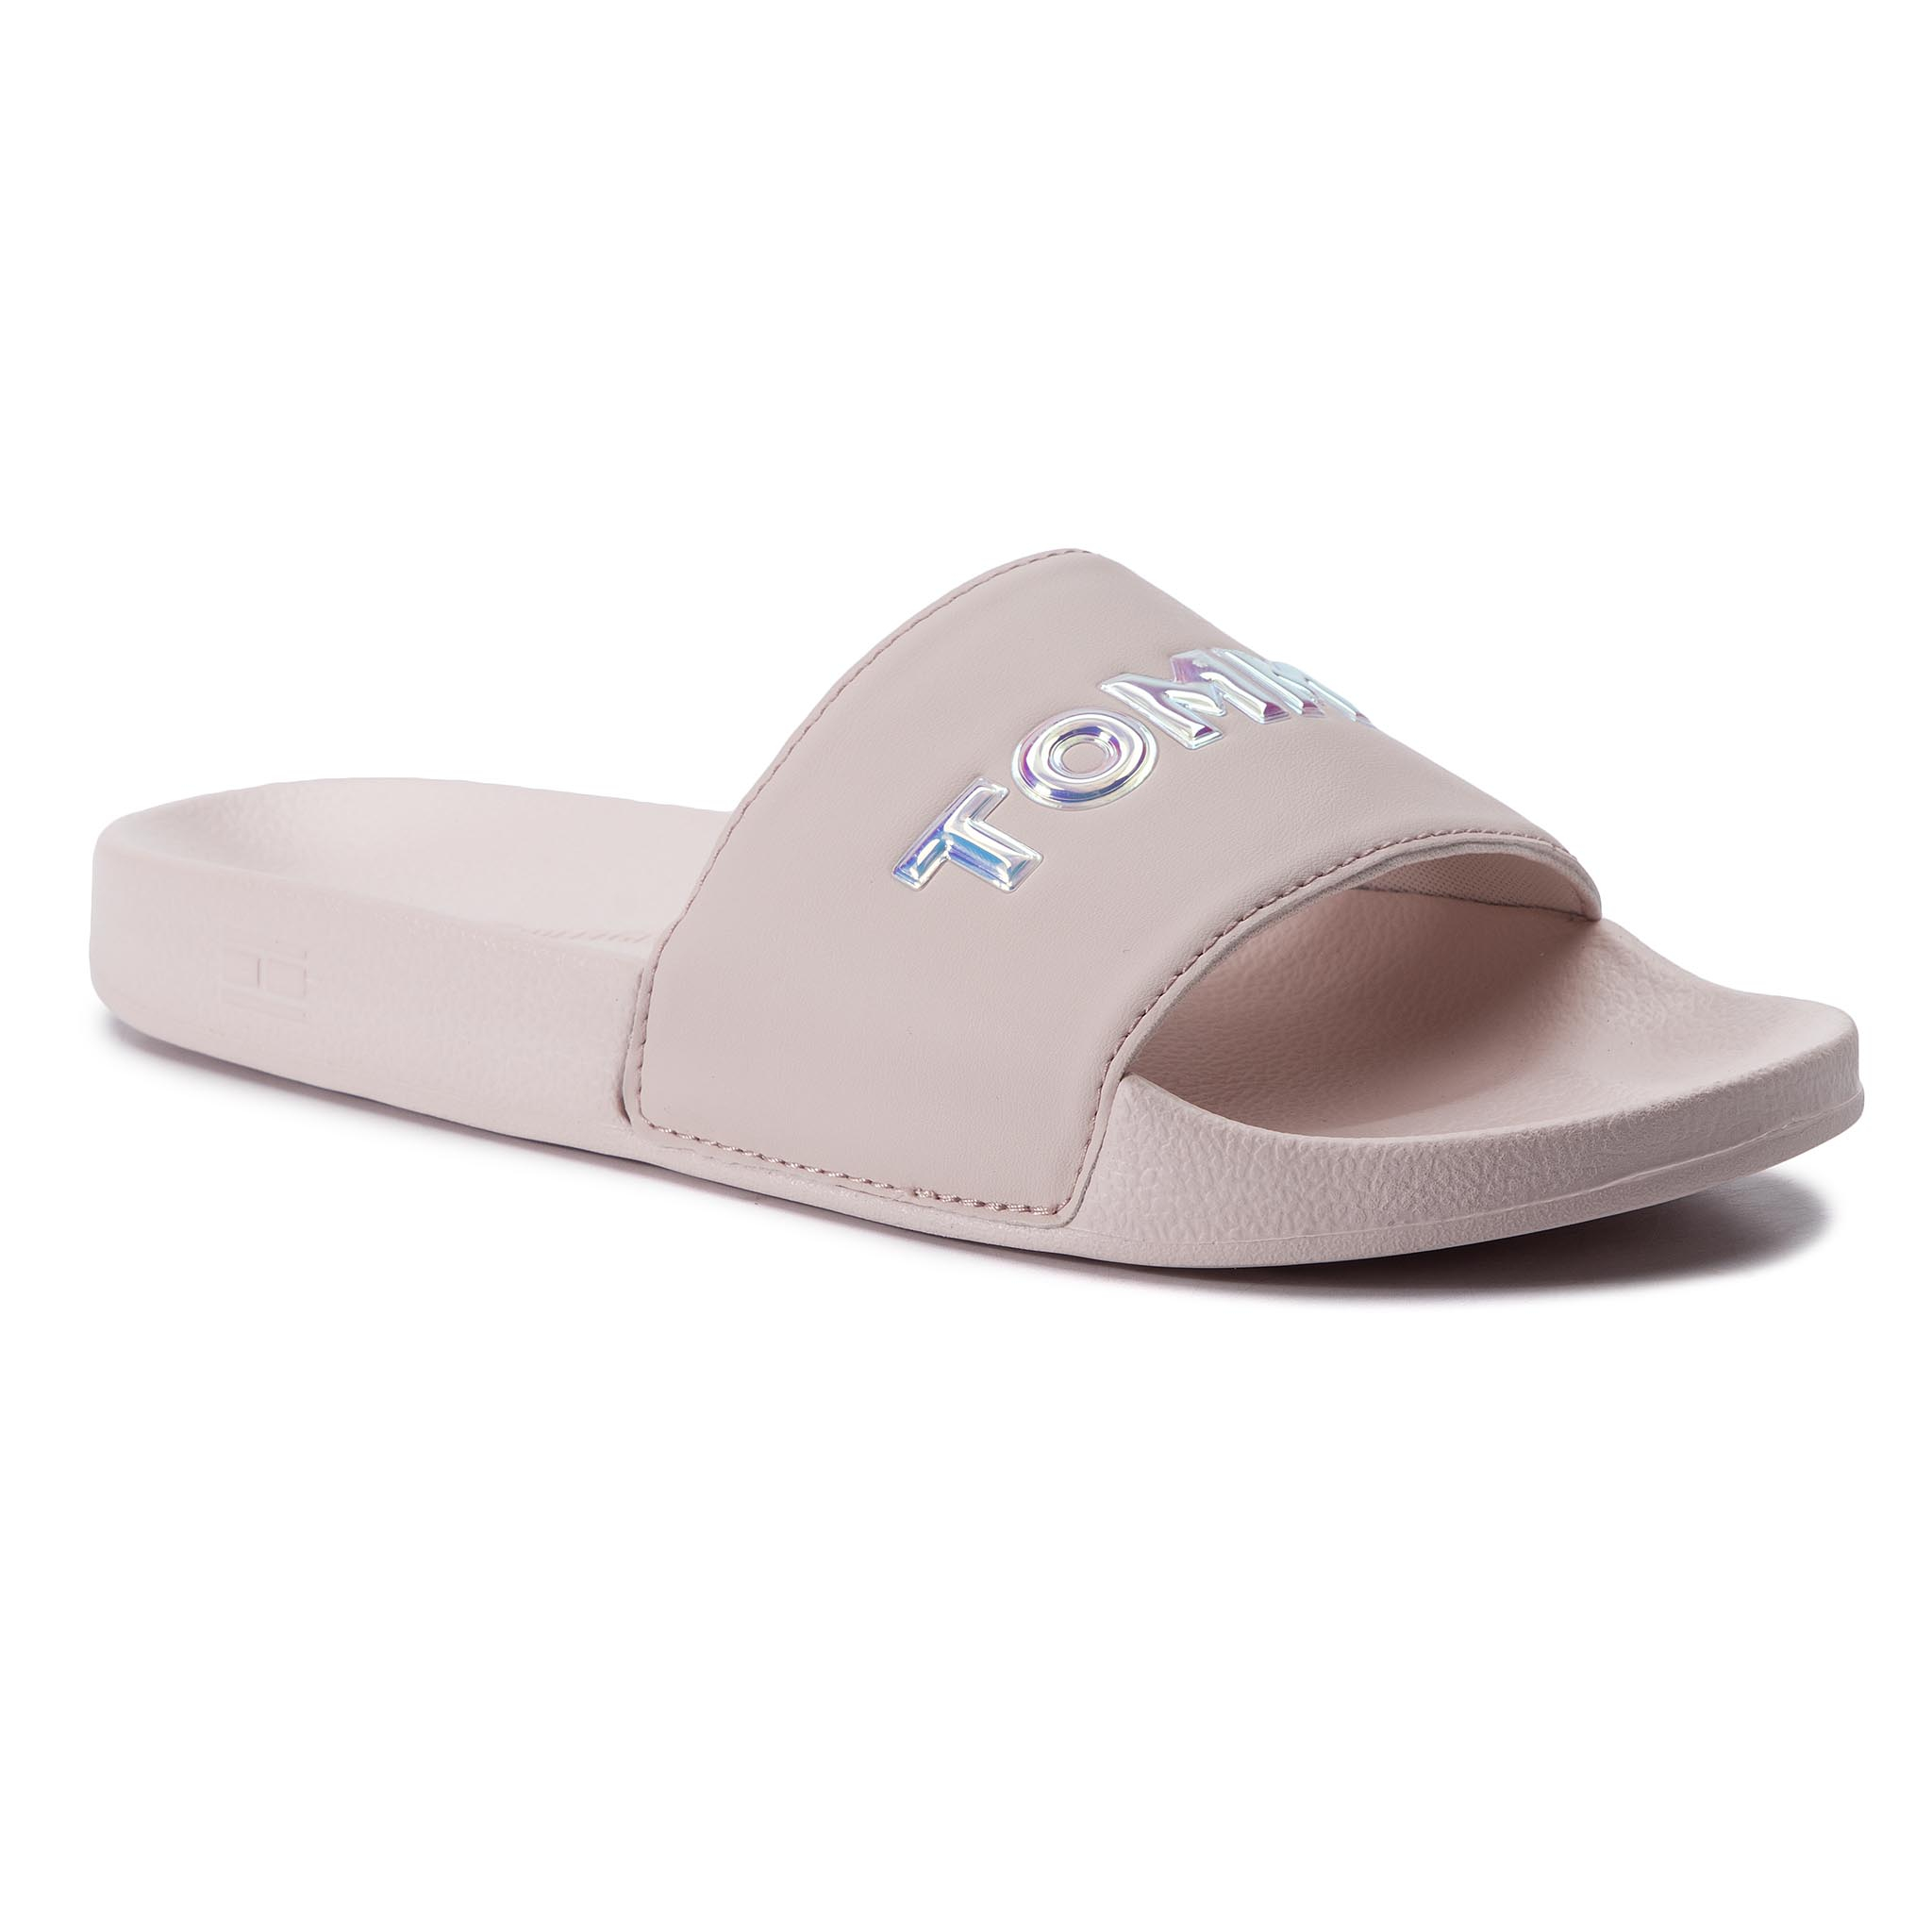 7f4ed1a90c Šľapky TOMMY HILFIGER - Iridescent Detail Pool Slide FW0FW04237 Silver  Peony 658